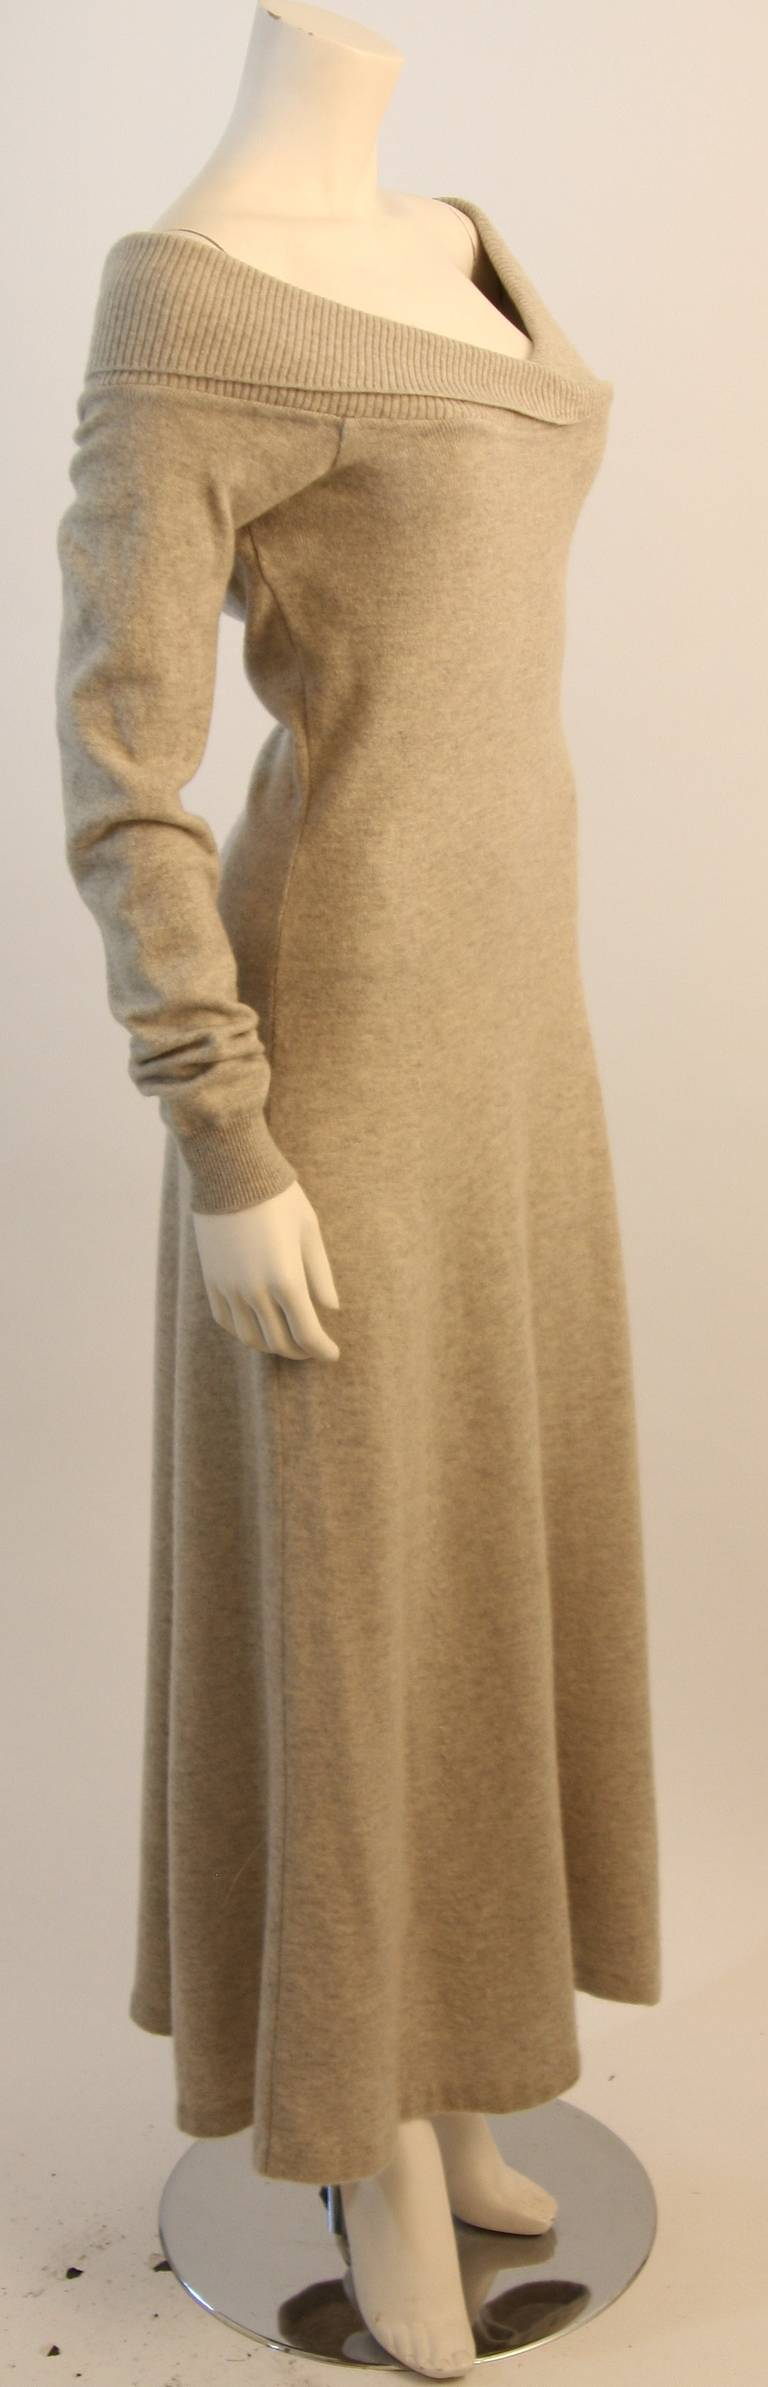 Ralph Lauren Full Length Cashmere Off-the-shoulder Dress Size Medium 6